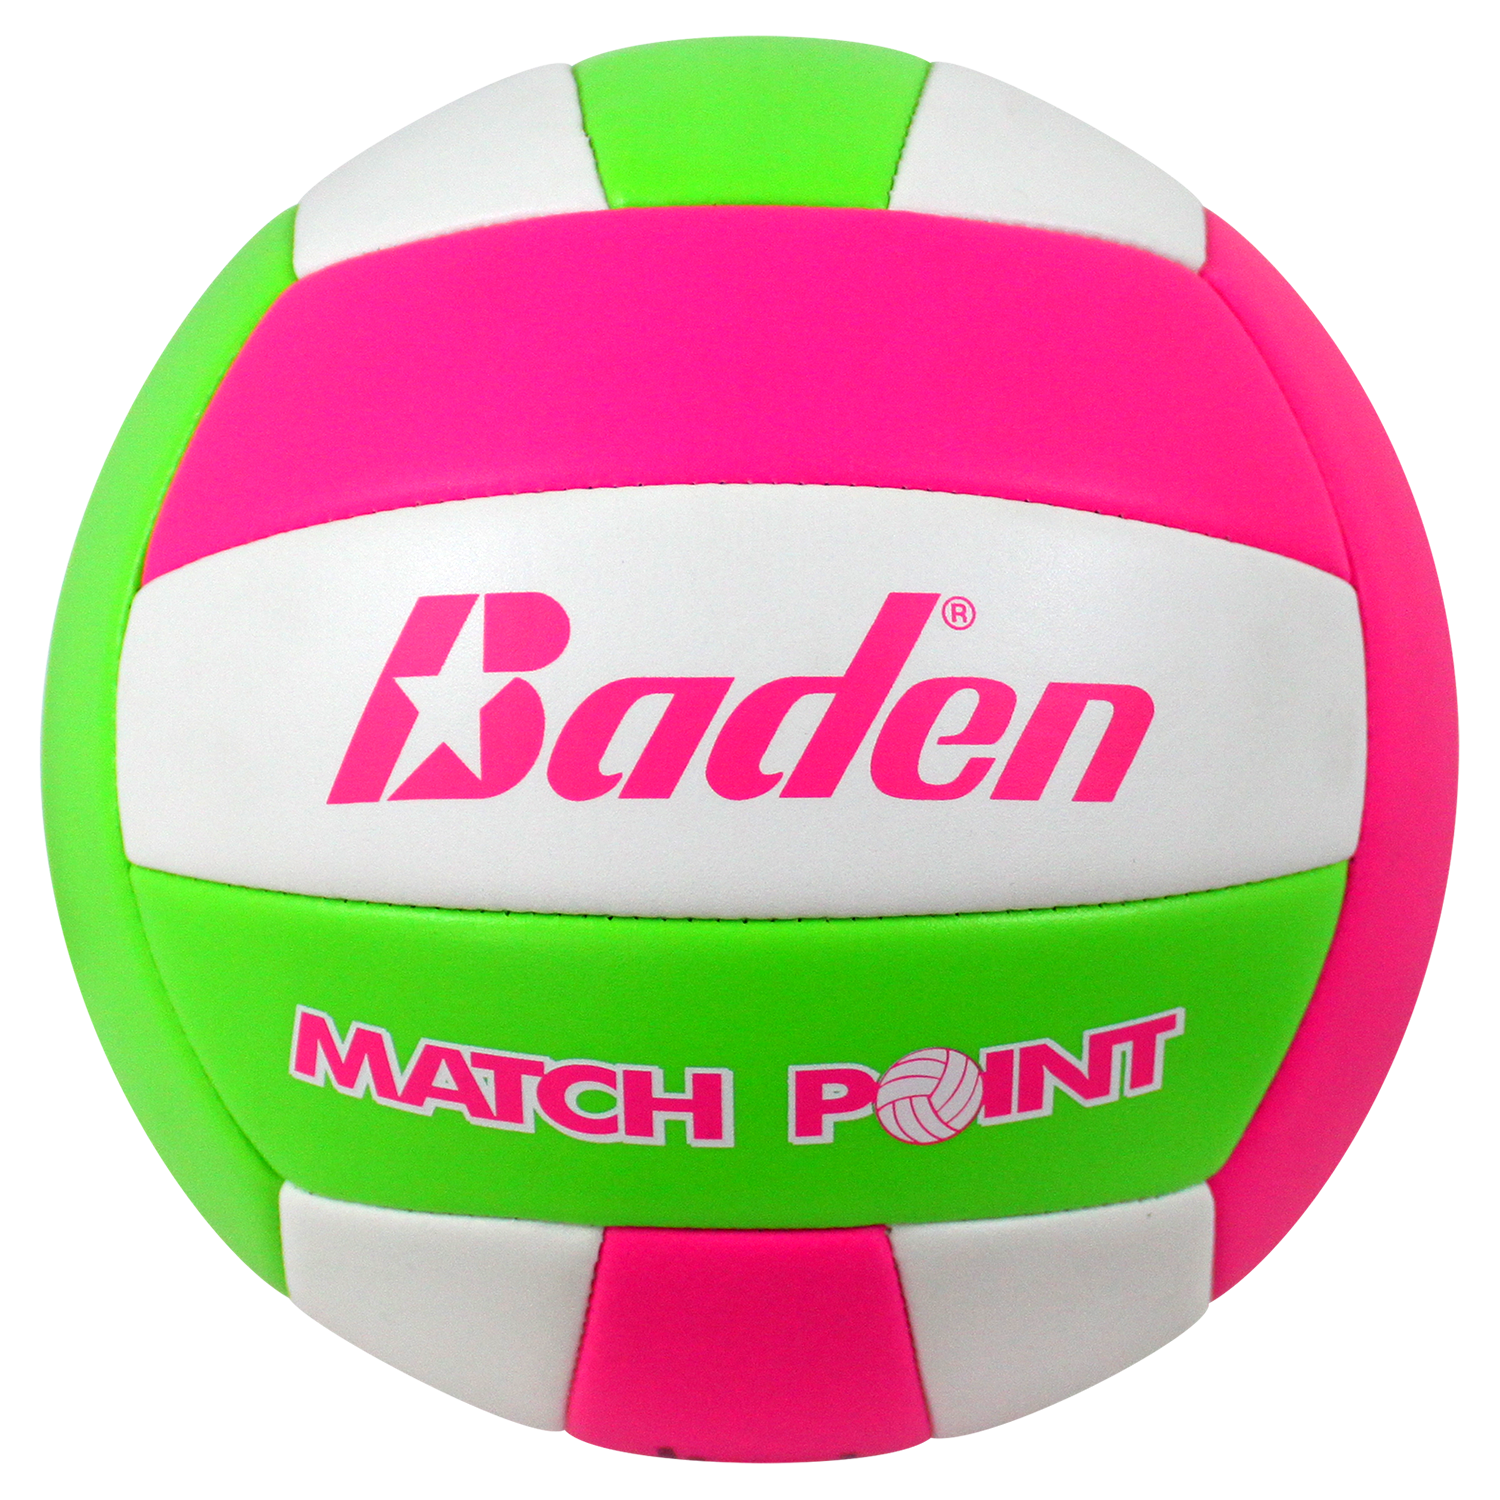 Match Point Volleyball Volleyball Match Point